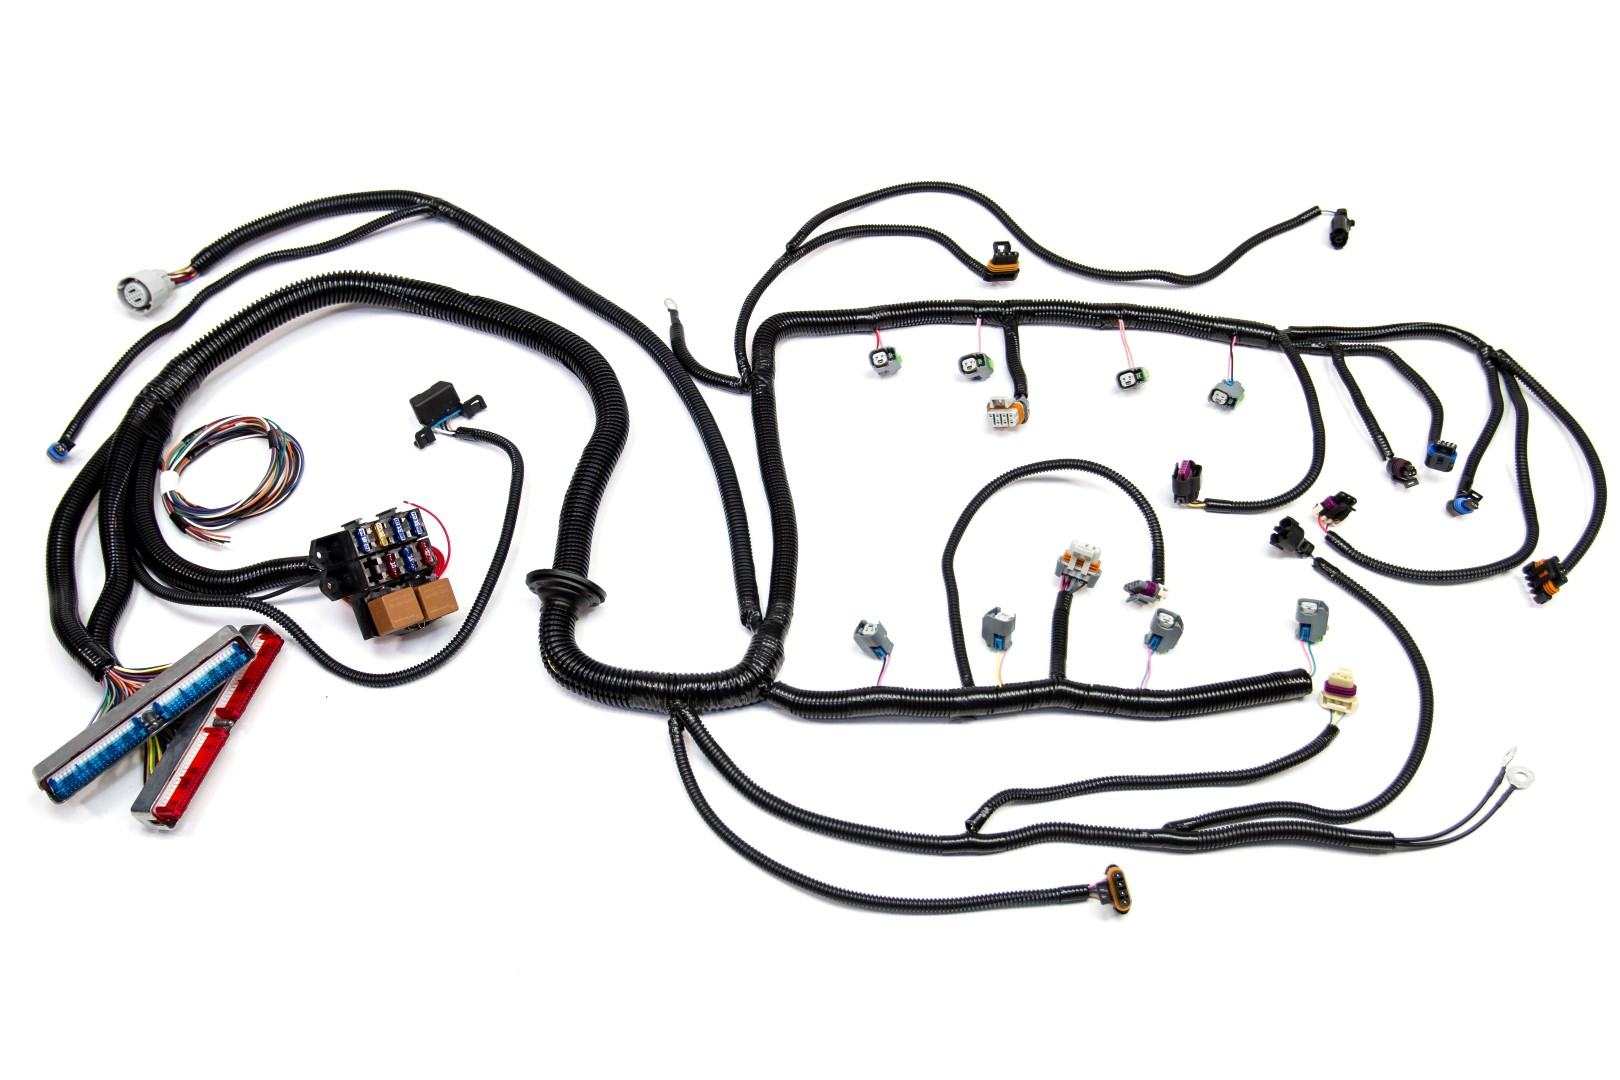 Gm Ls3 Wiring Diagram Igniter Circuit Schematic Coils For Ls1 Diagrams 06 13 Gen Iv Ls2 W T56 Tr6060 Standalone Harness Dbc Fuel